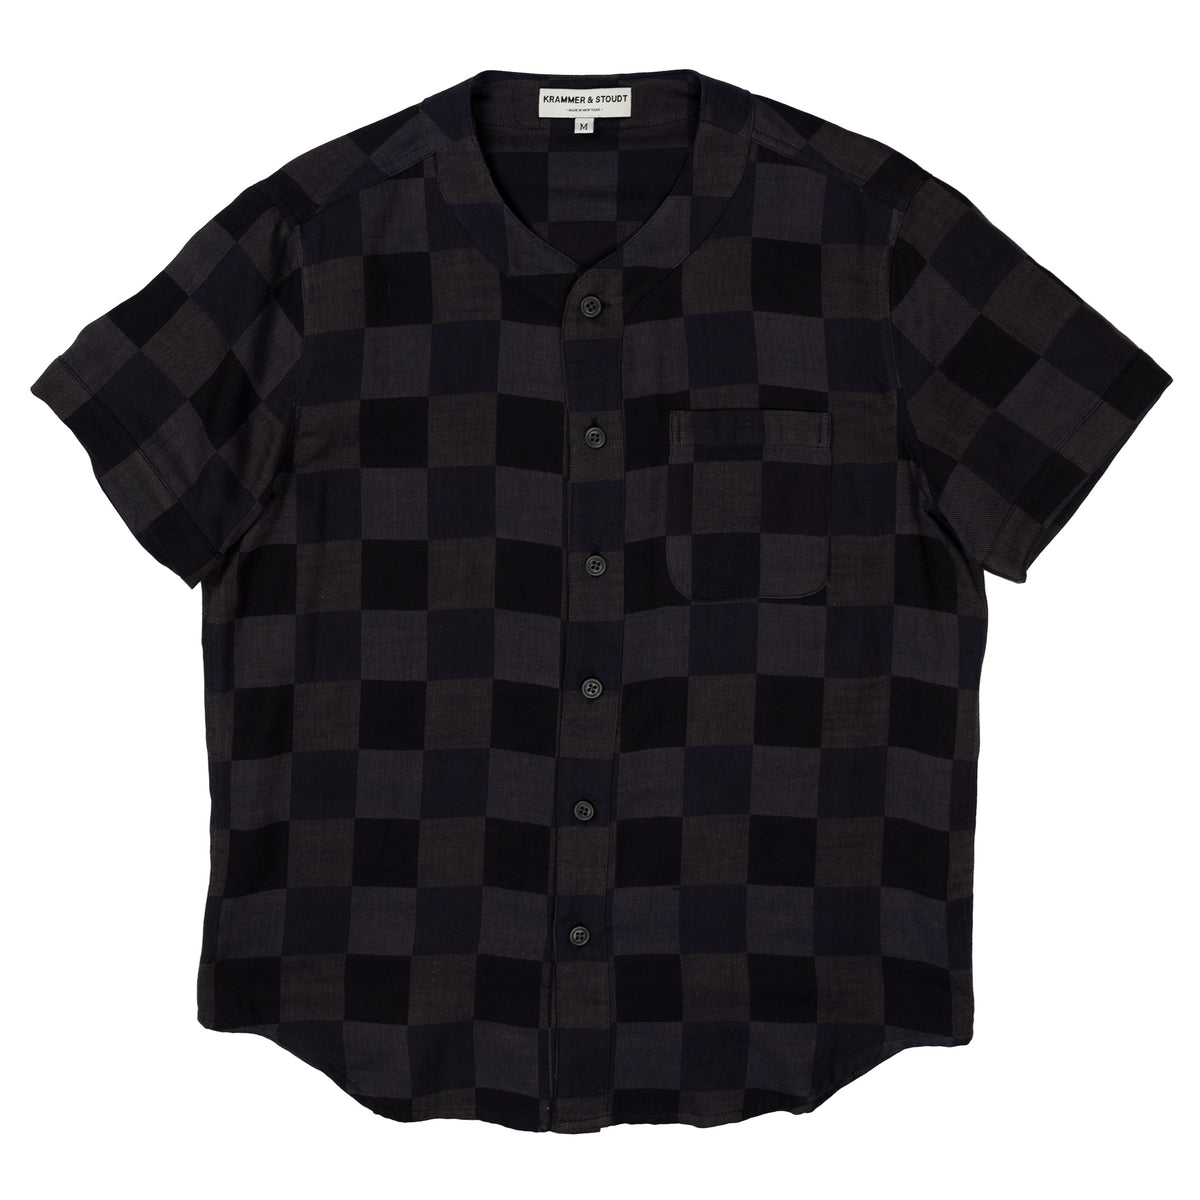 Krammer and Stoudt Baseball Shirt Black Navy Checkers